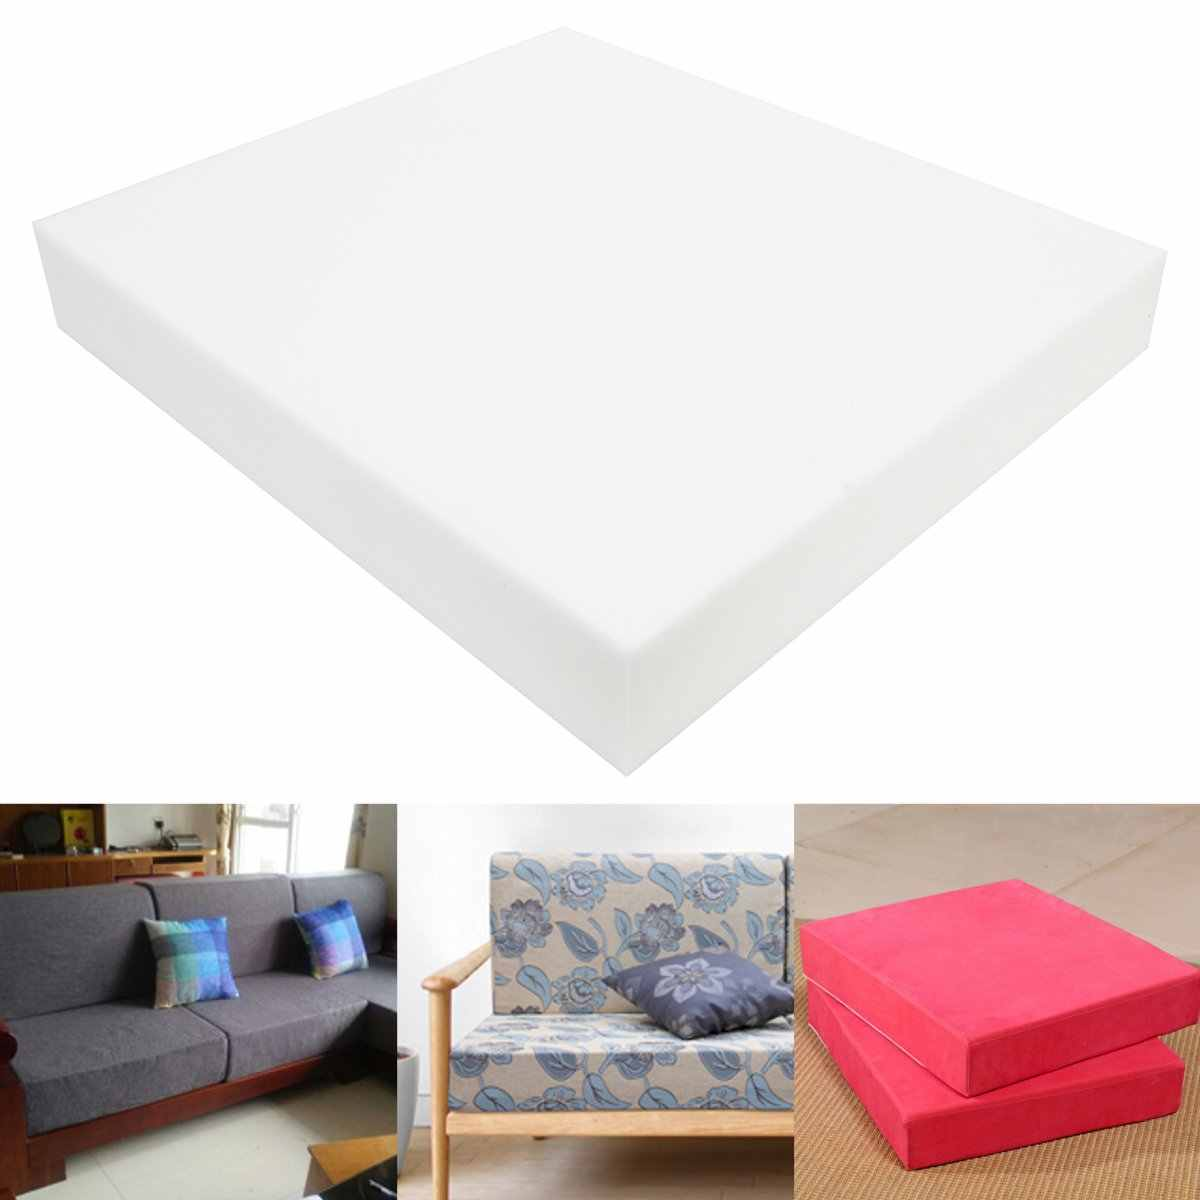 Square High Density Seat Foam White Cushion Sheet Upholstery Replacement Pad High Density Premium Chair Cushion Seat Pad 12 Inch